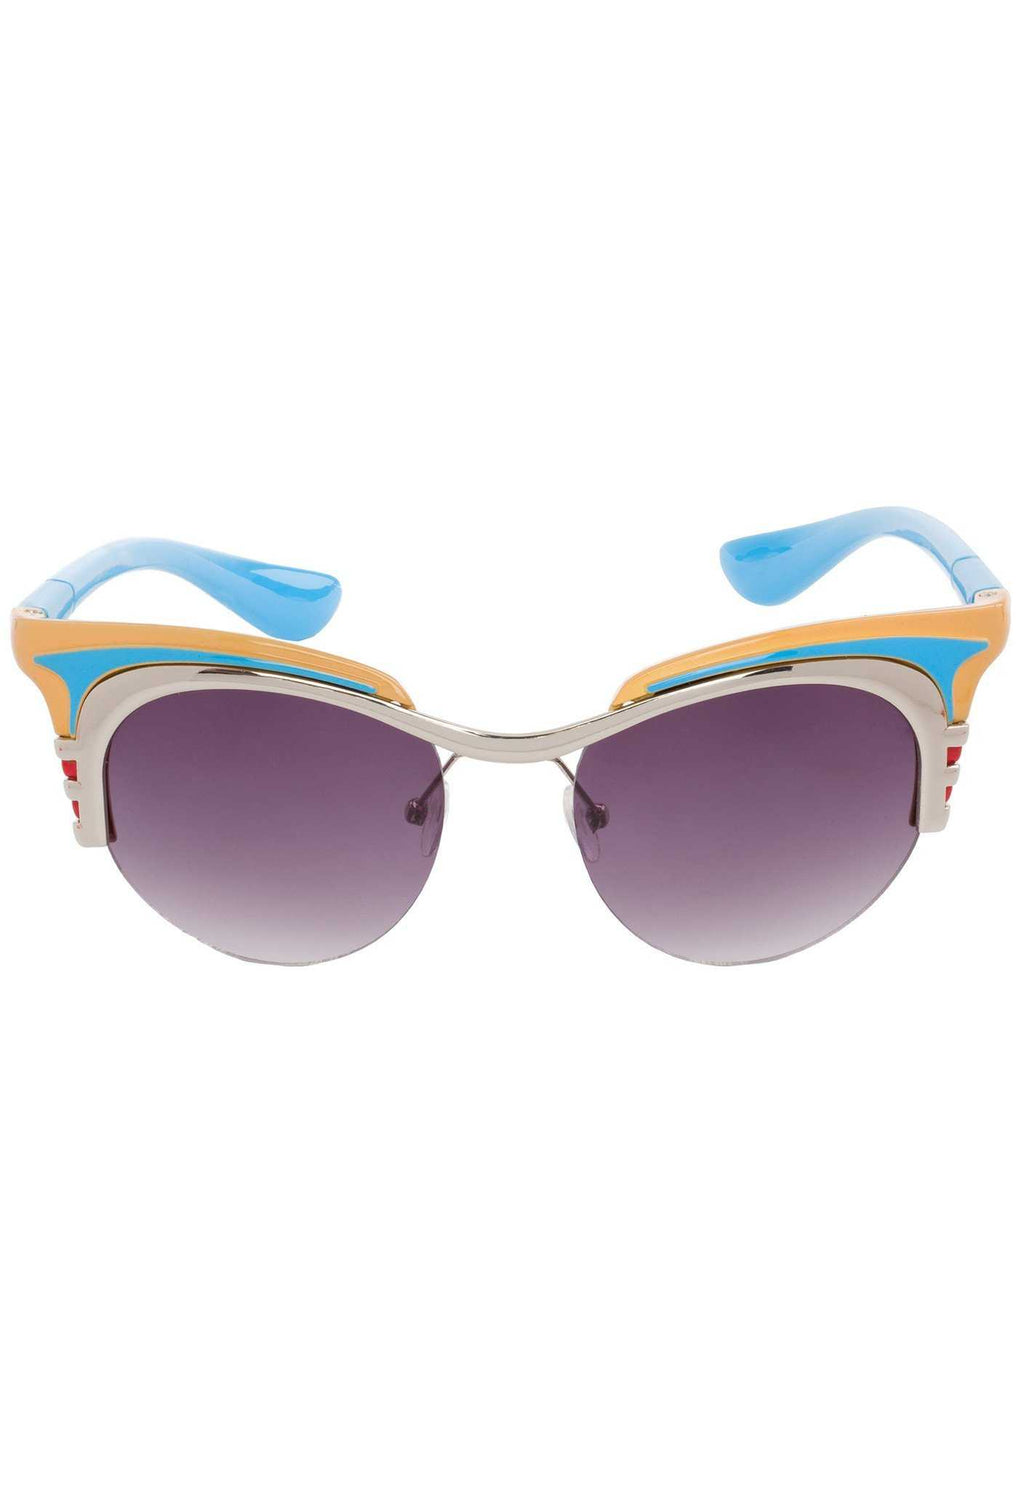 Accessories - Zetta Sunglasses In Blue